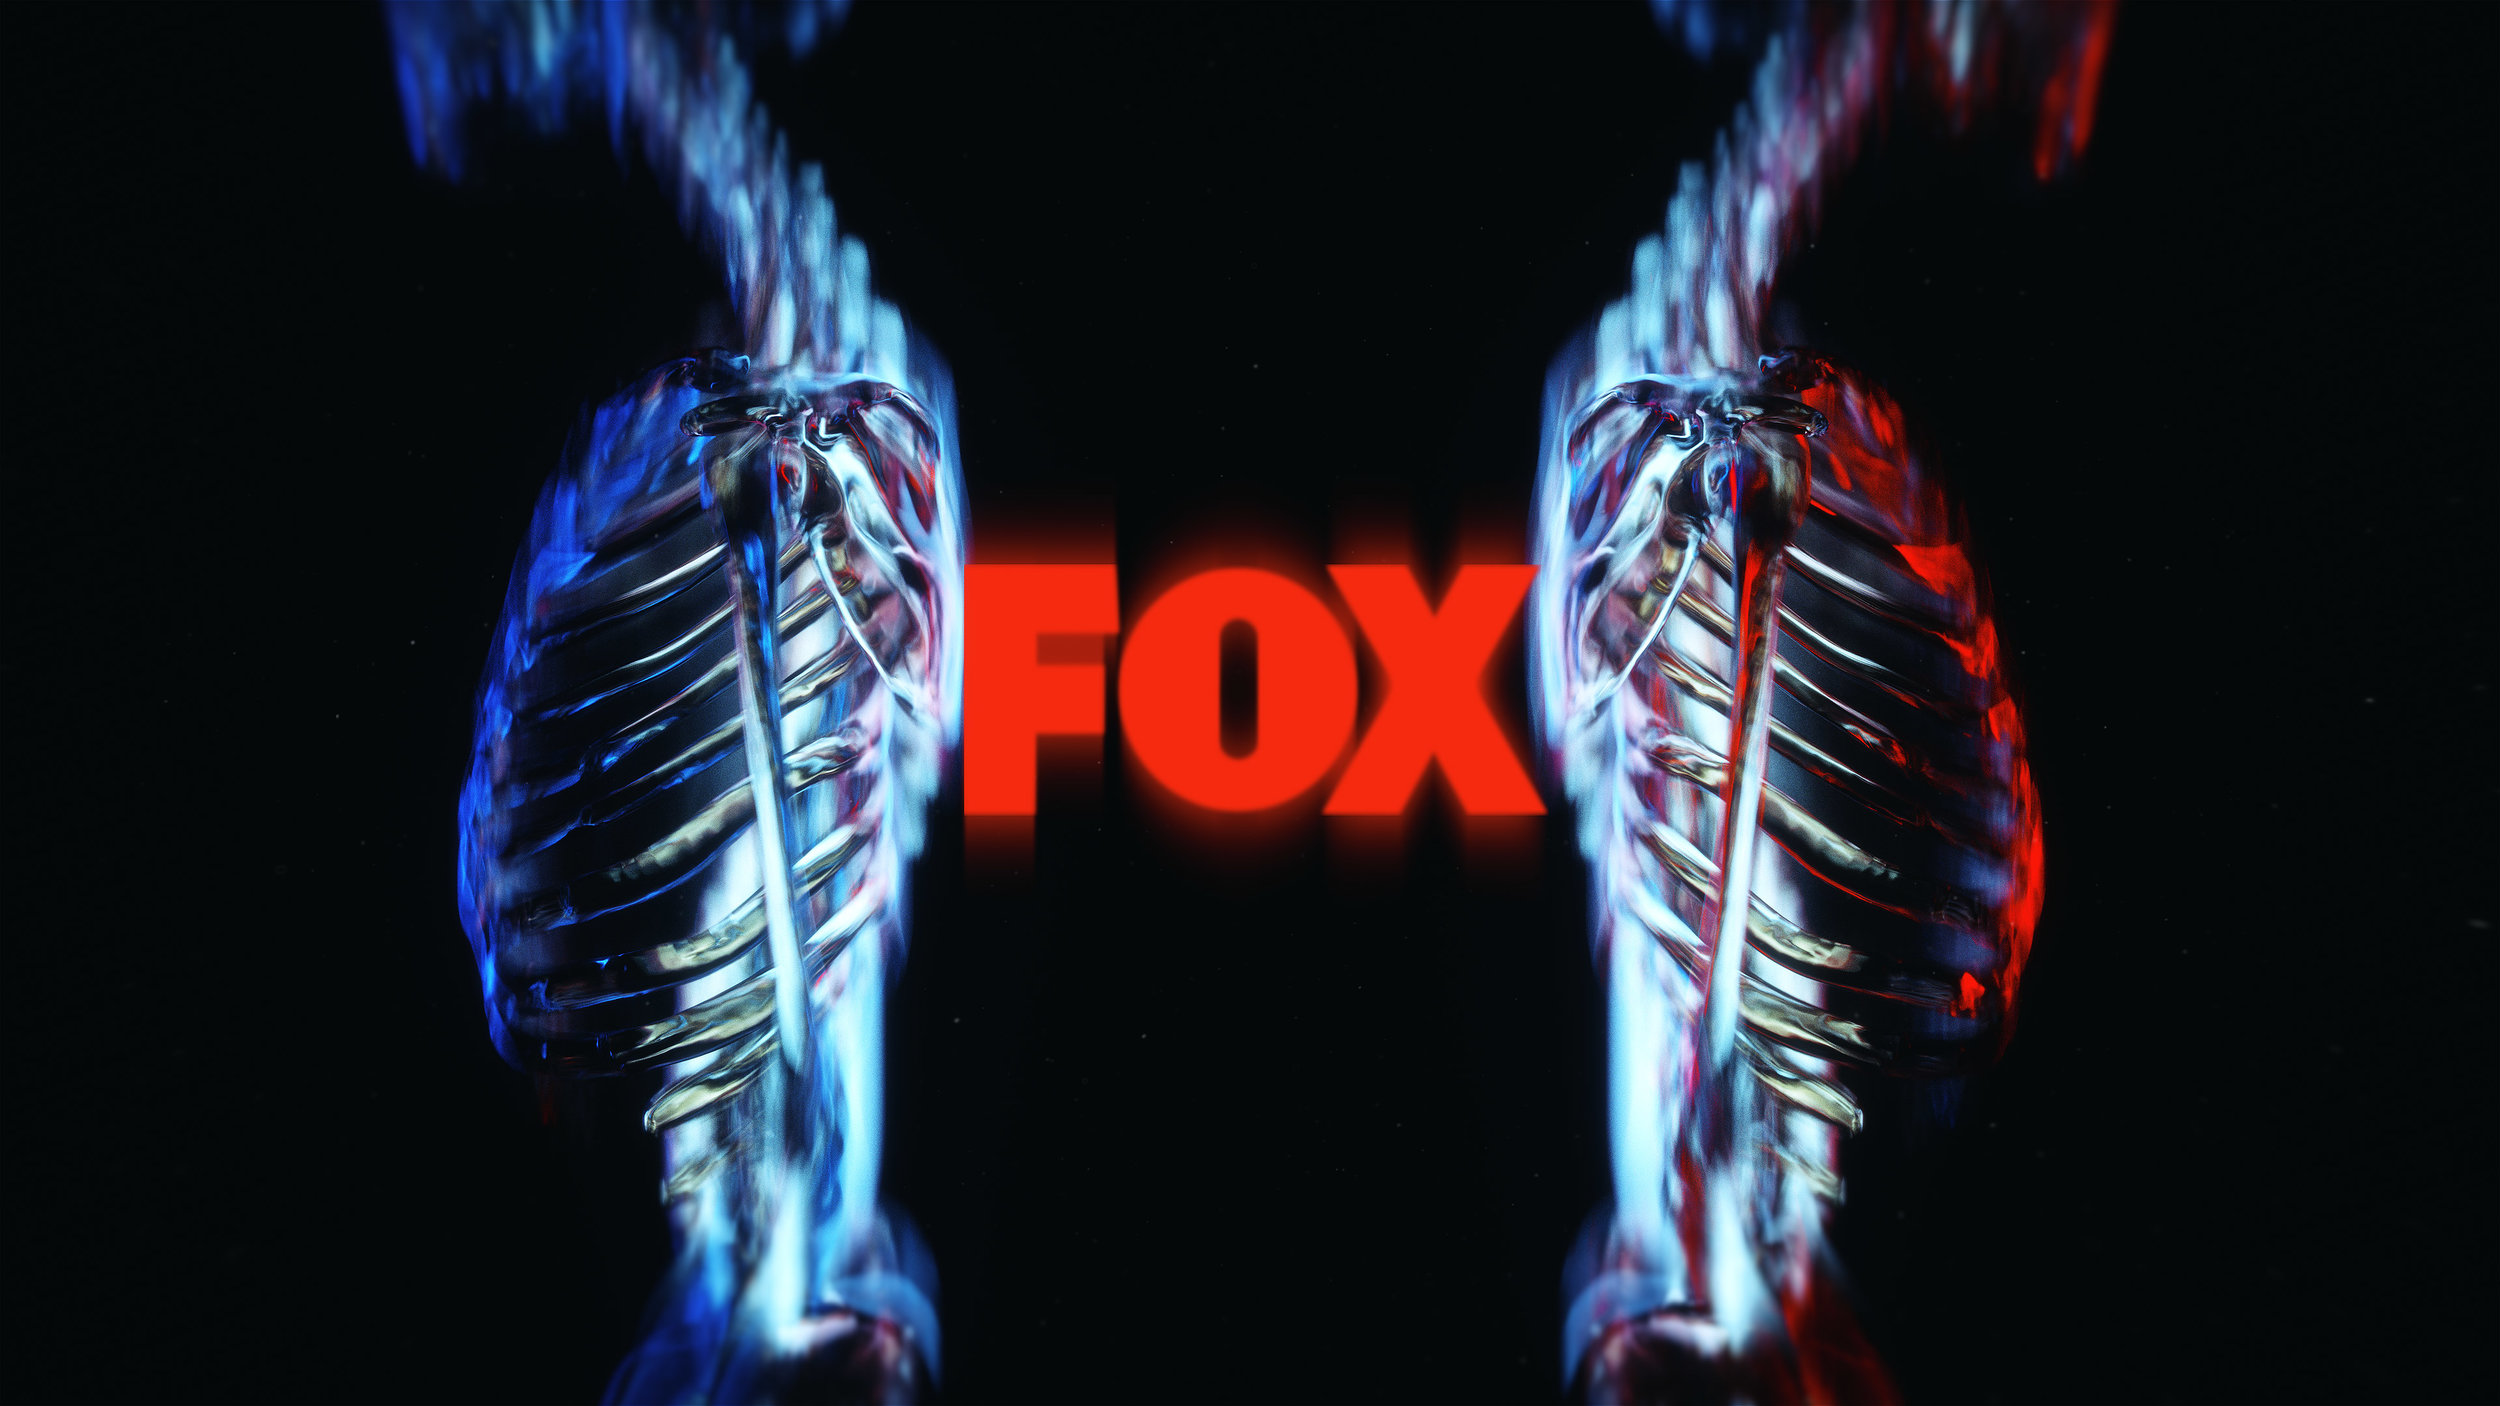 FOX_ProdigalSon_GraphicsPackage_LookC_190405_V01_MM.jpg